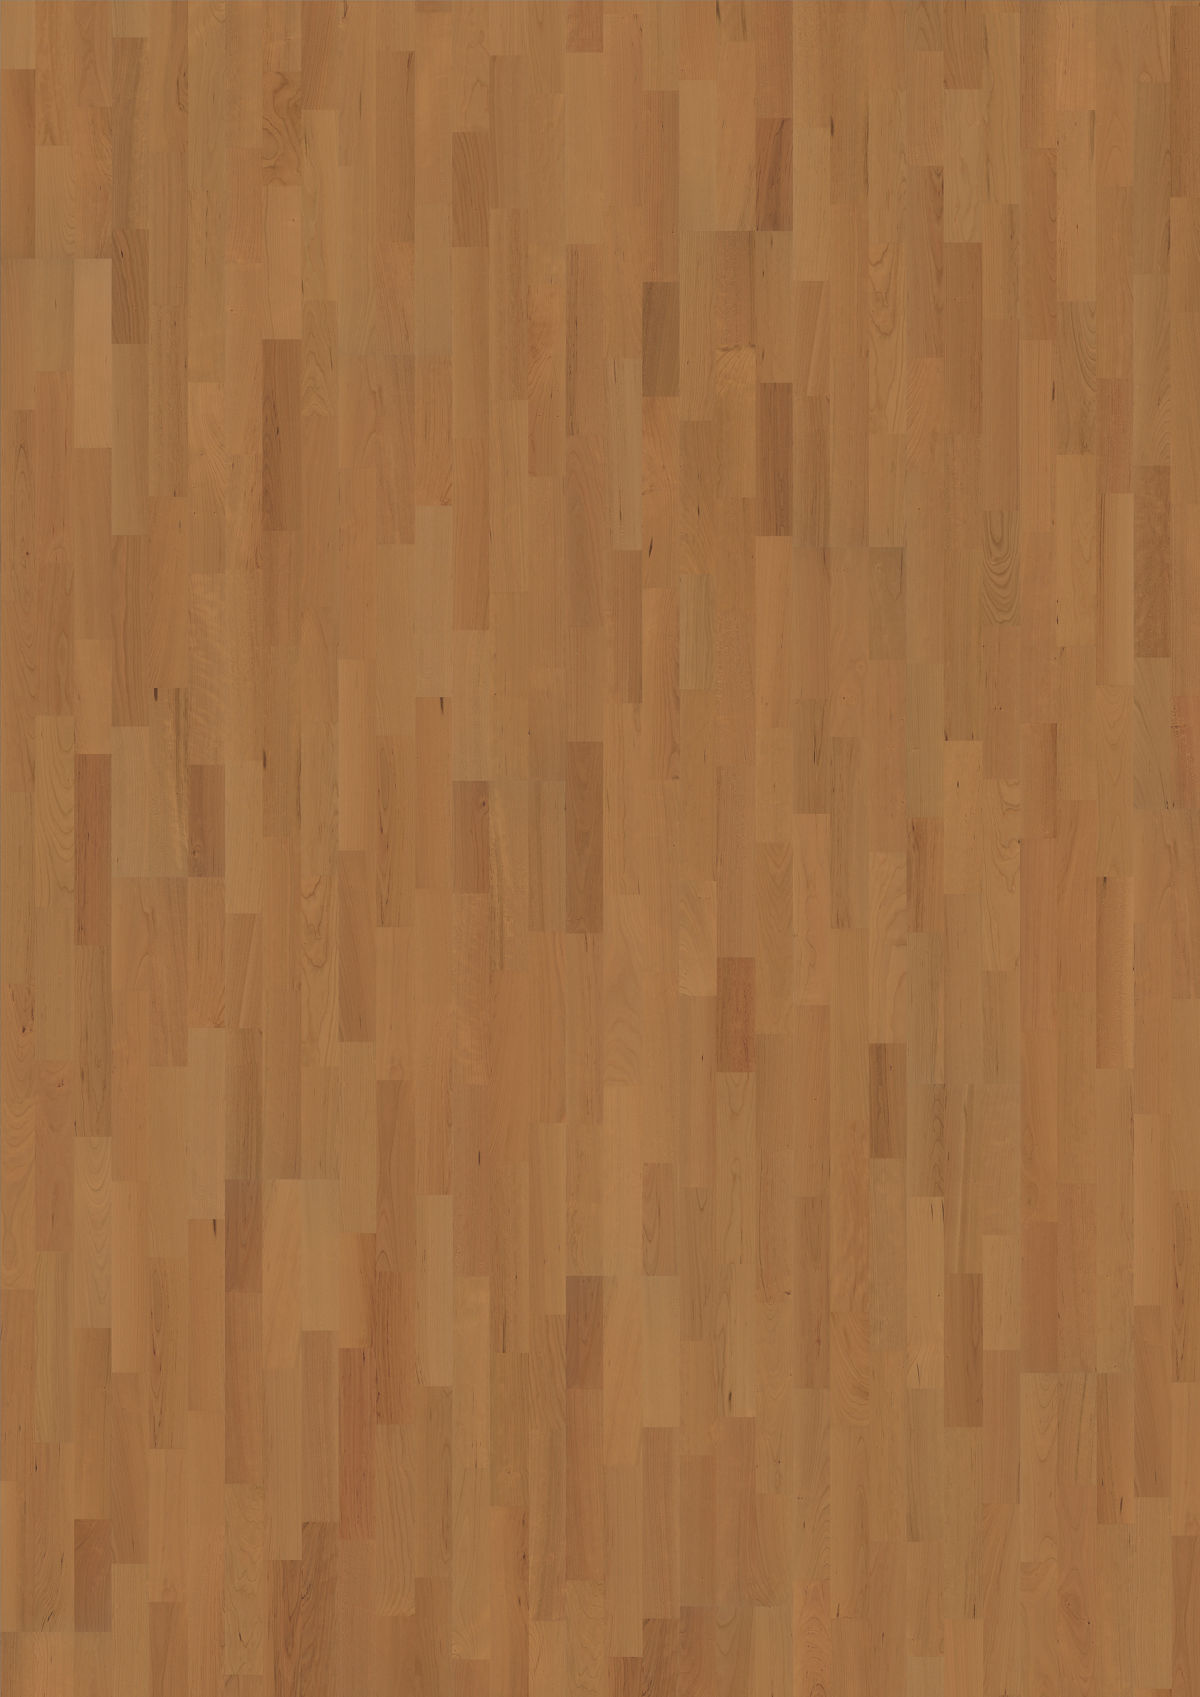 Kahrs cherry savannah engineered wood flooring for Kahrs flooring